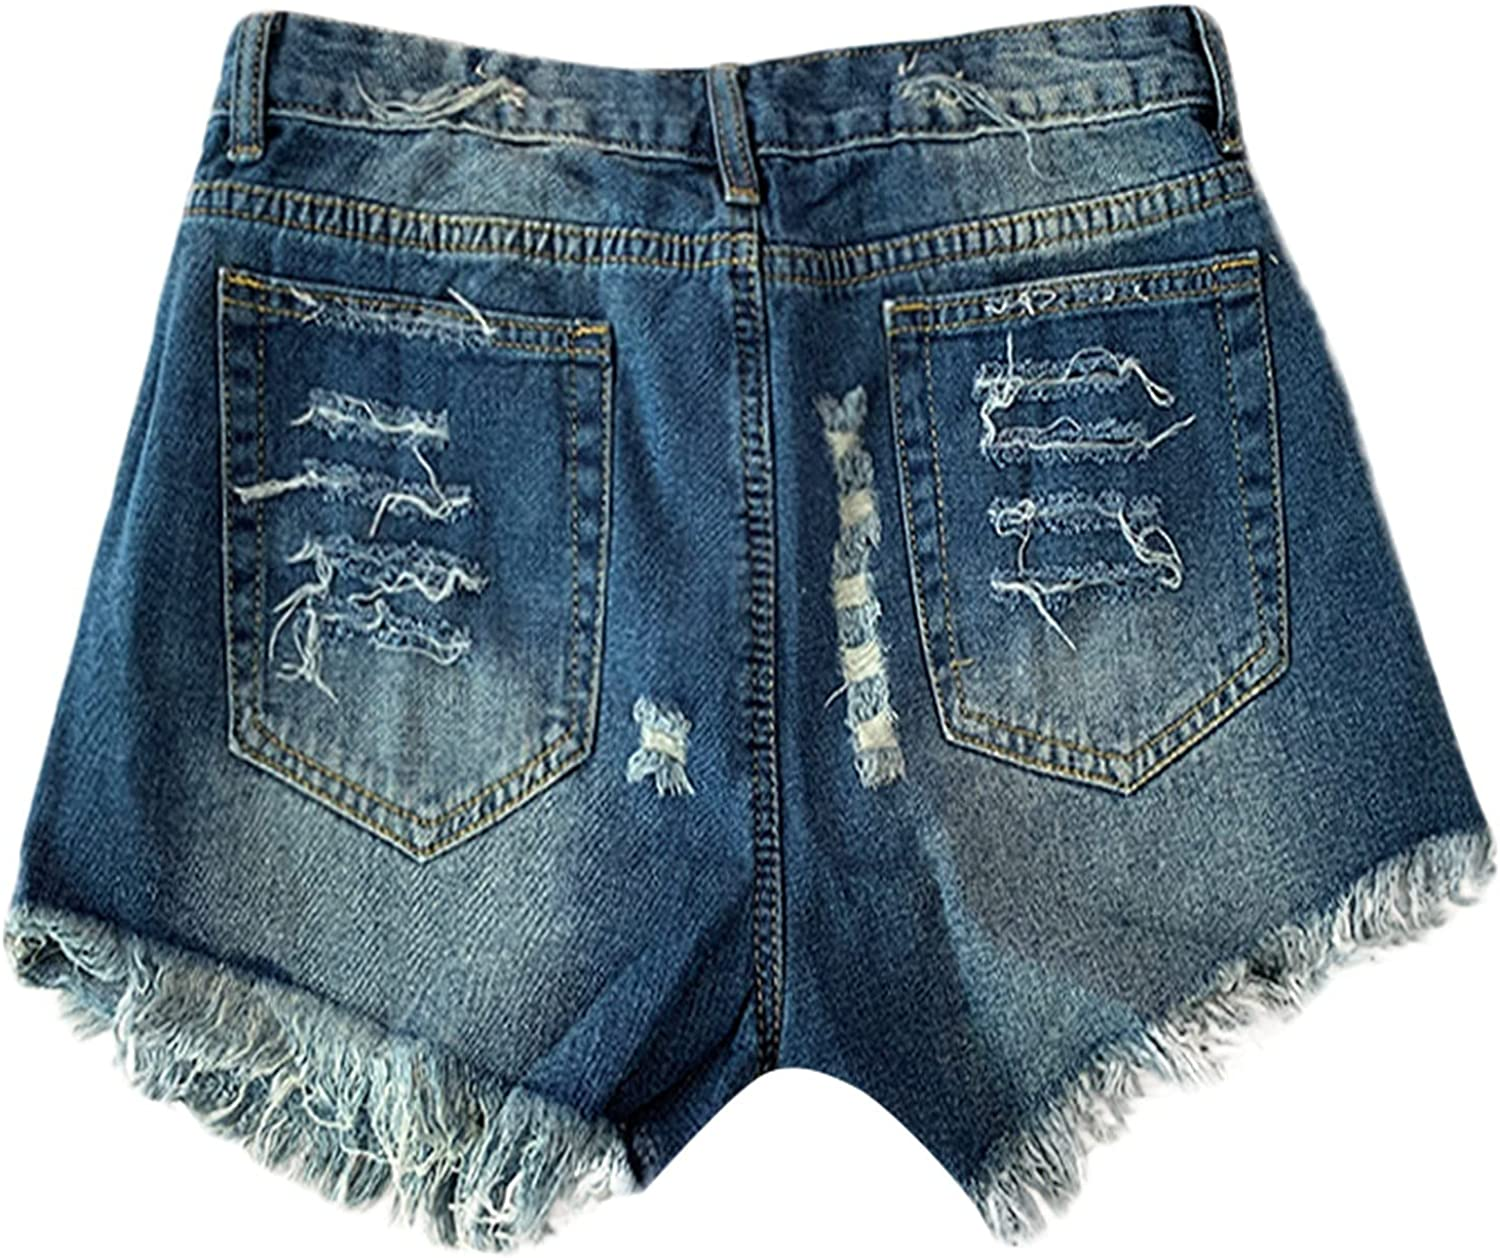 Women's Jean Shorts Distressed Ripped Denim Shorts Stretchy Frayed Hot Short Jeans with Pockets